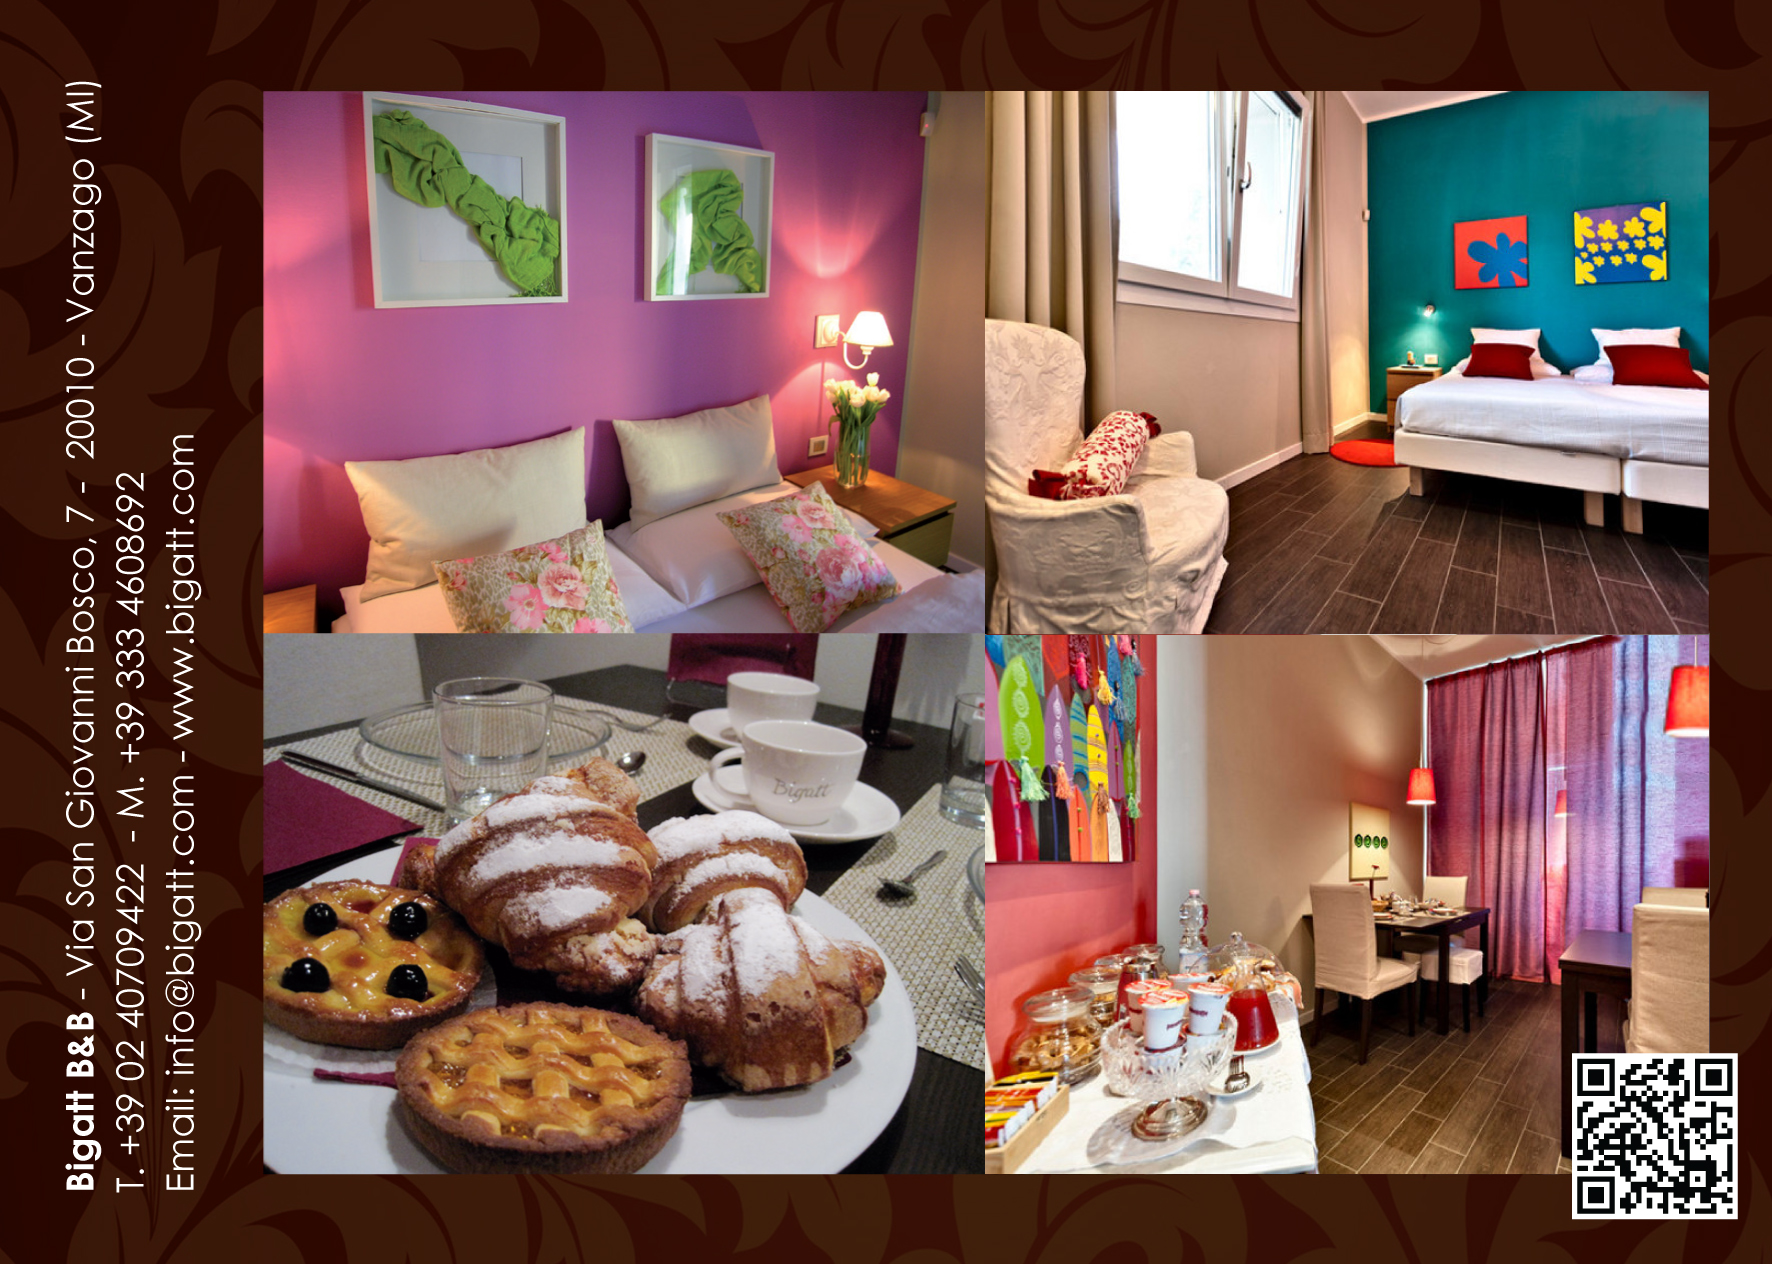 Bed and breakfast Milano Rho - Bed & Breakfast - lombardia (Vanzago -  Milano - MI) ~